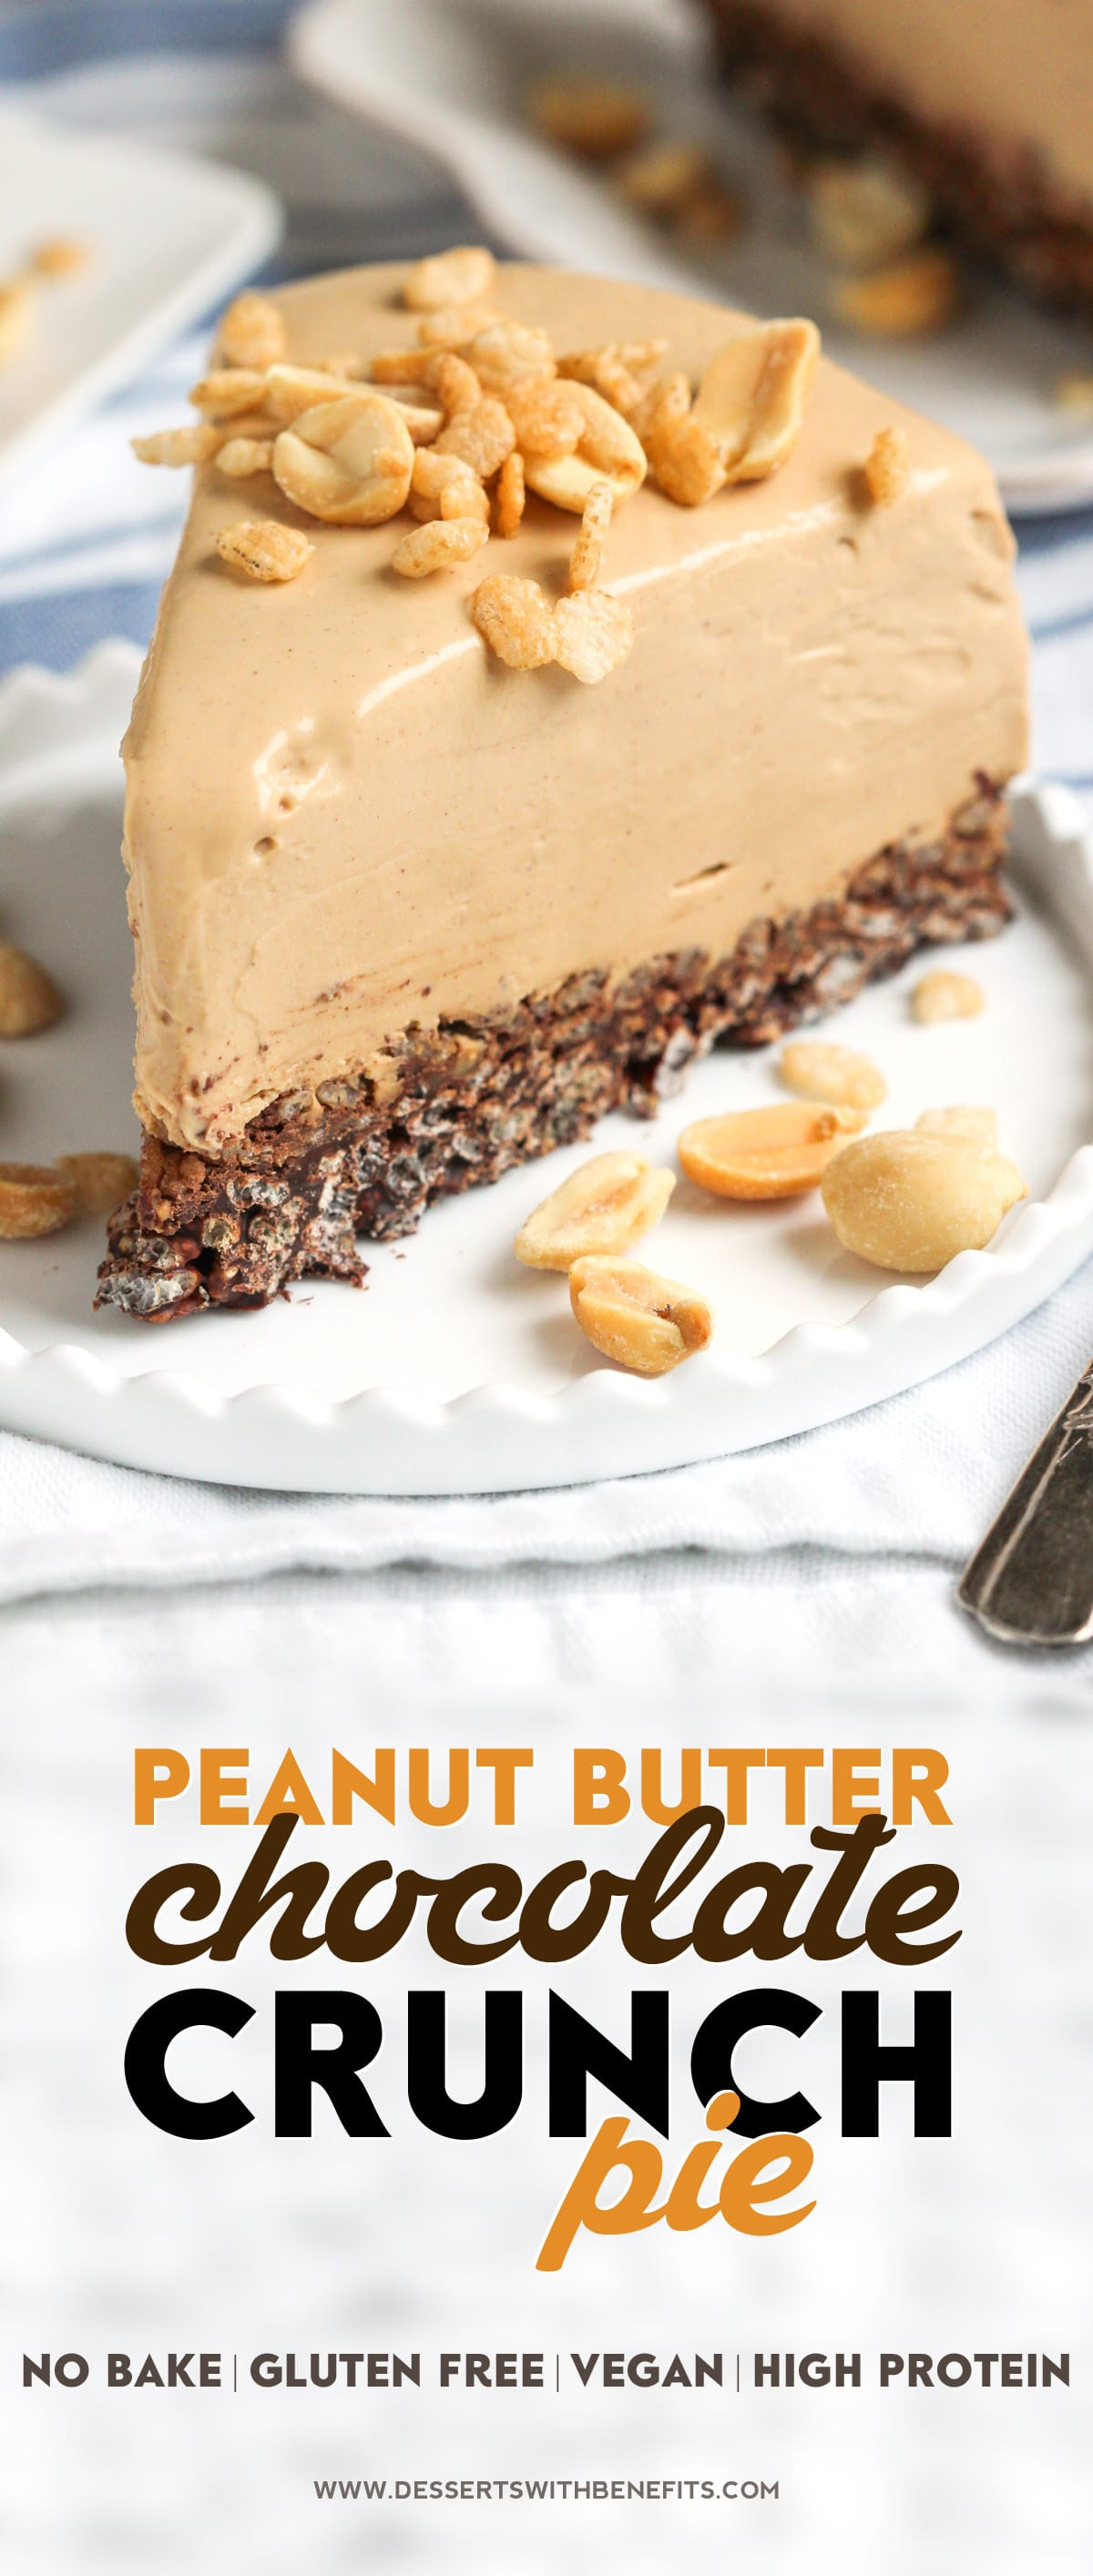 [14 healthy pie recipes to celebrate Pi Day] This Healthy Peanut Butter Chocolate Crunch Pie has got a thick, rich, and delicious peanut butter filling atop a crunchy, chocolatey base. And it's all no-bake, low sugar, high protein, high fiber, gluten free, dairy free, and vegan. This healthy dessert recipe is magic in a slice!